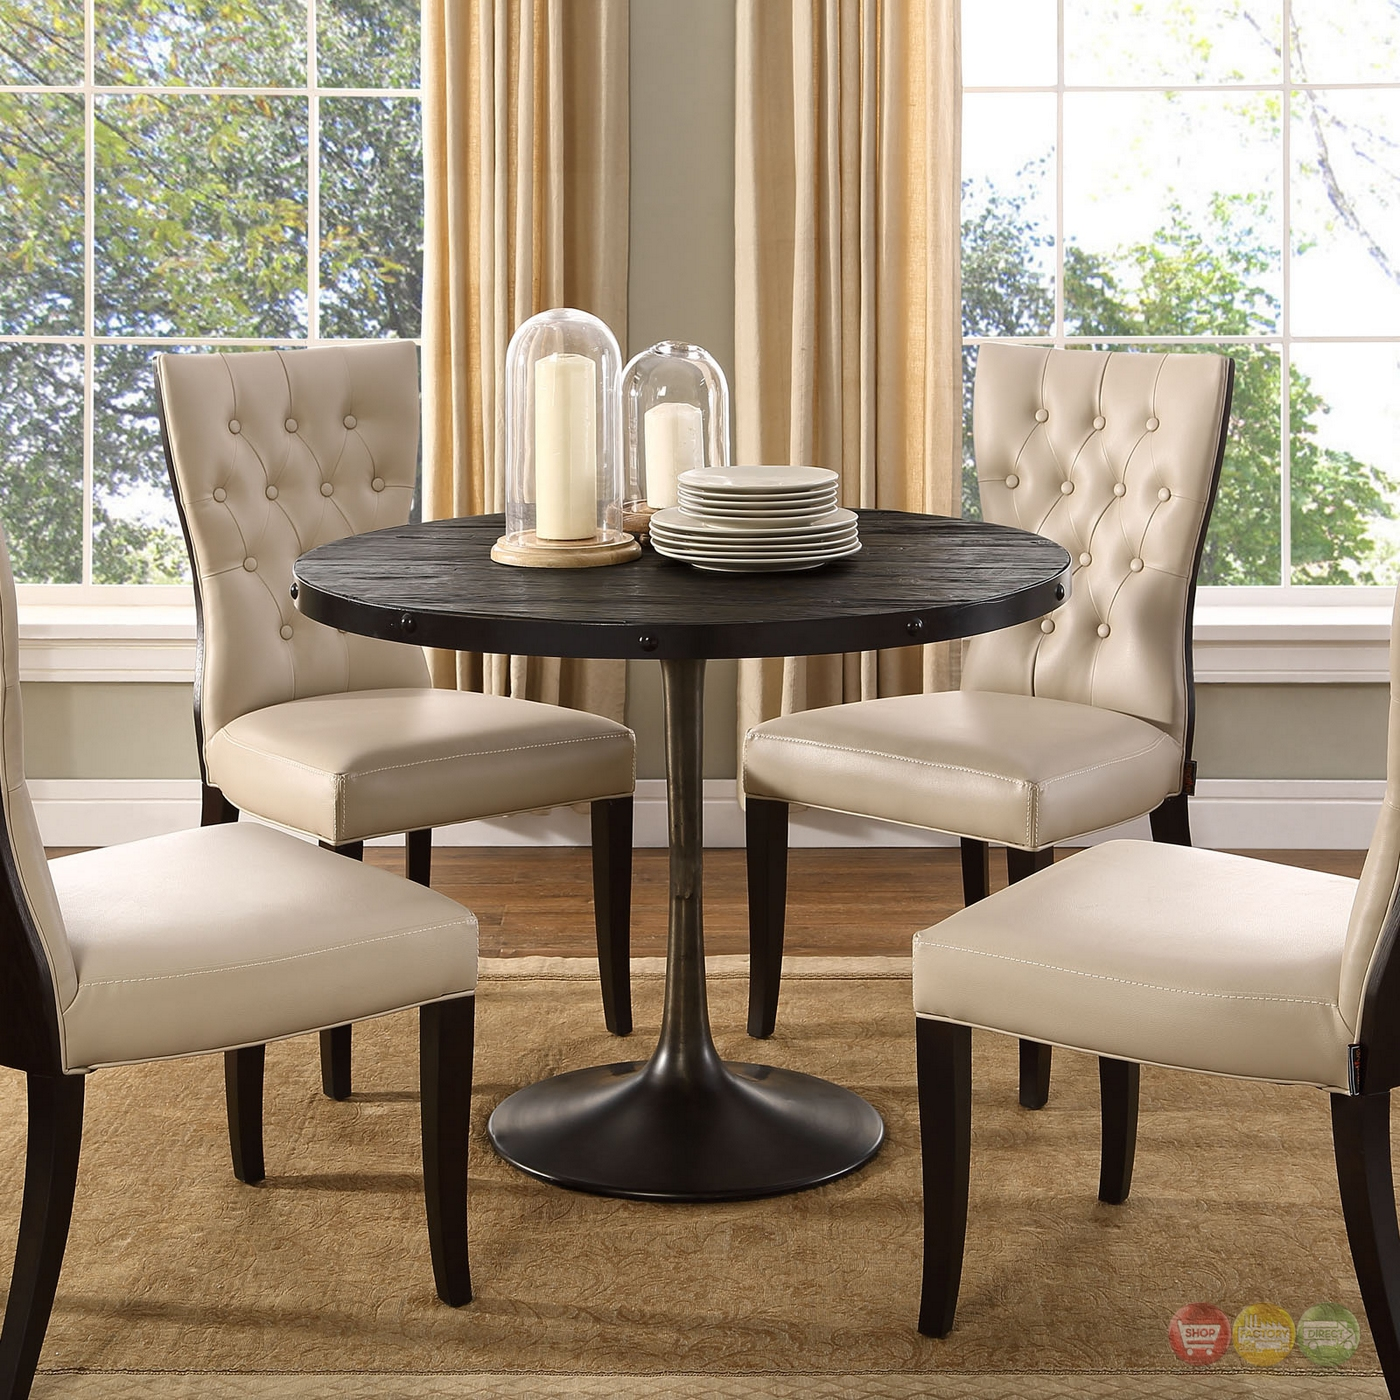 drive rustic 40 round wood top dining table with cast iron base black. Black Bedroom Furniture Sets. Home Design Ideas